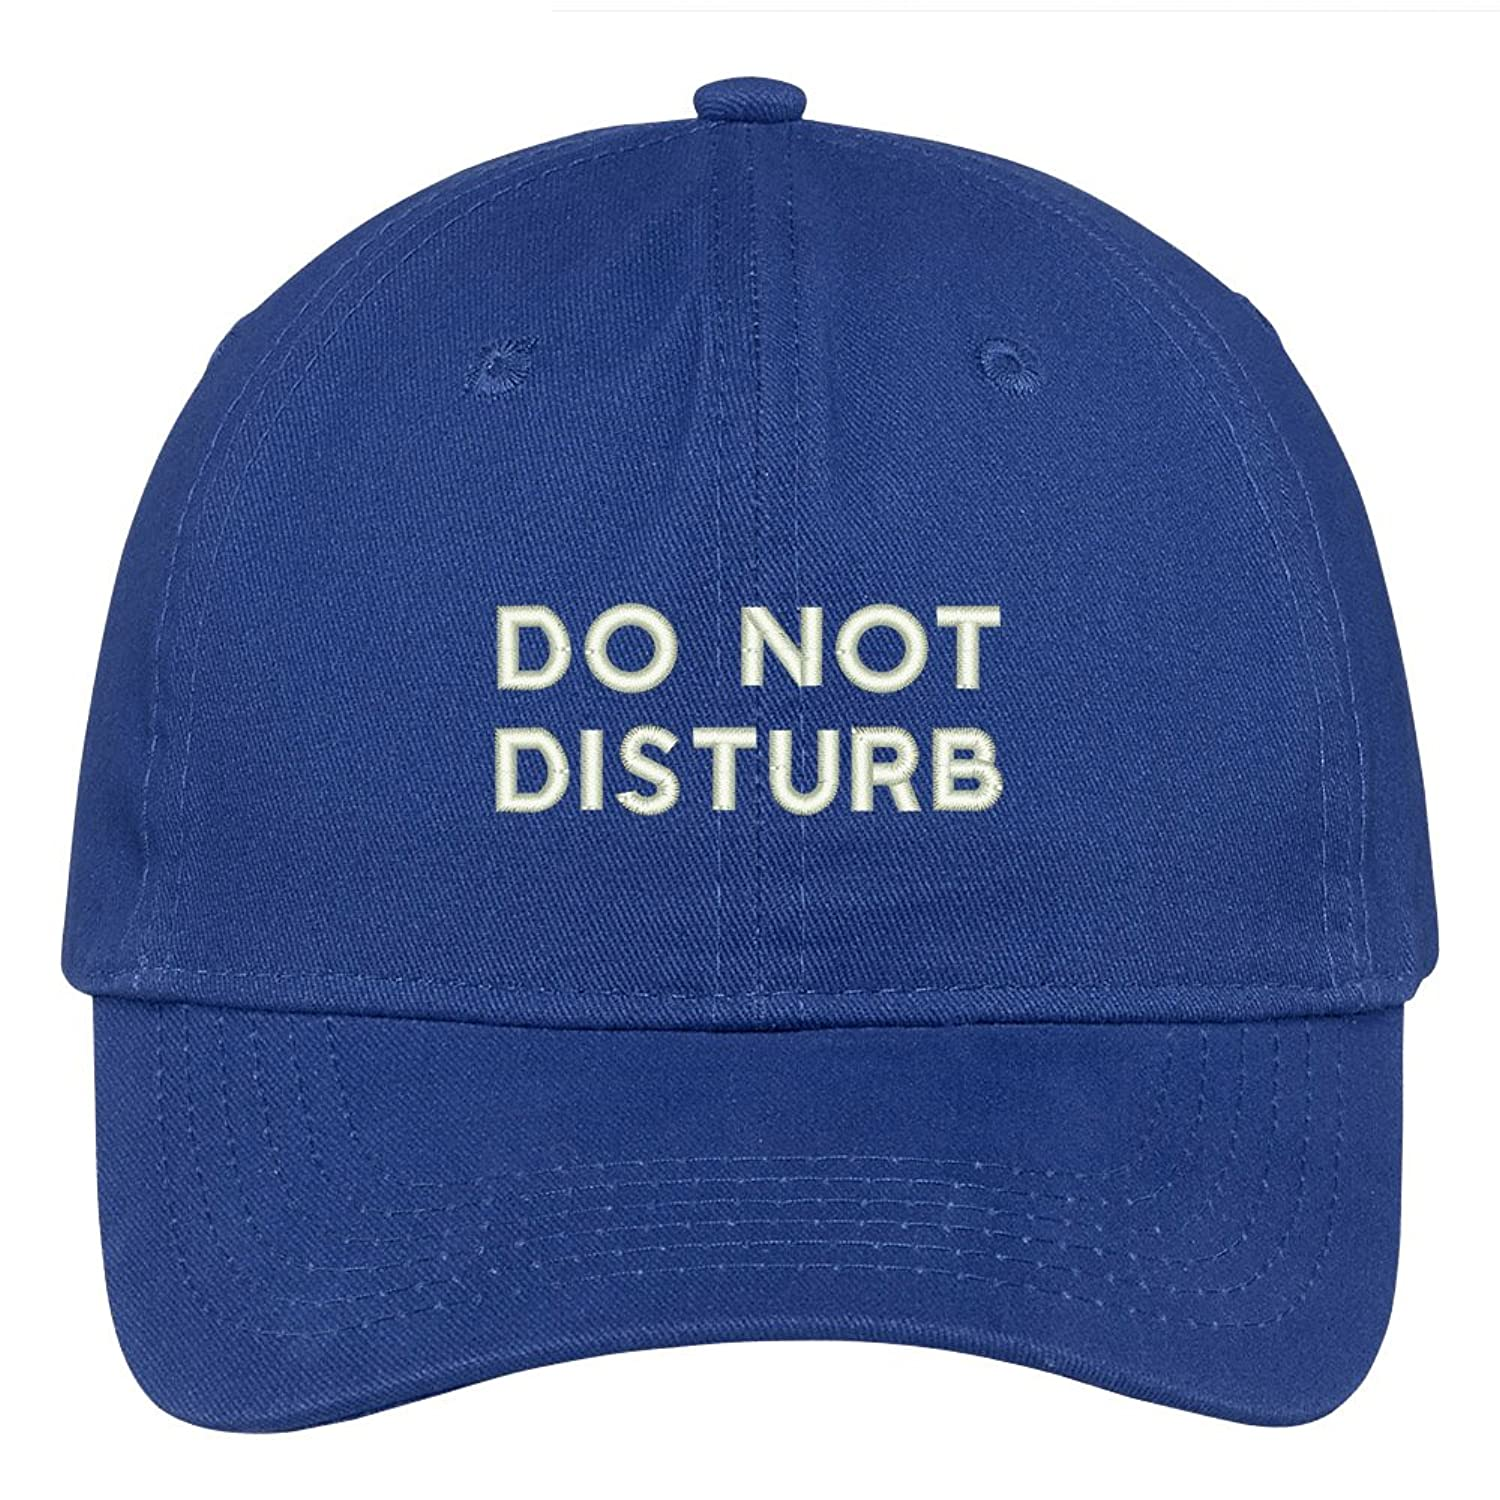 Do Not Disturb Embroidered Soft Low Profile Adjustable Cotton Cap